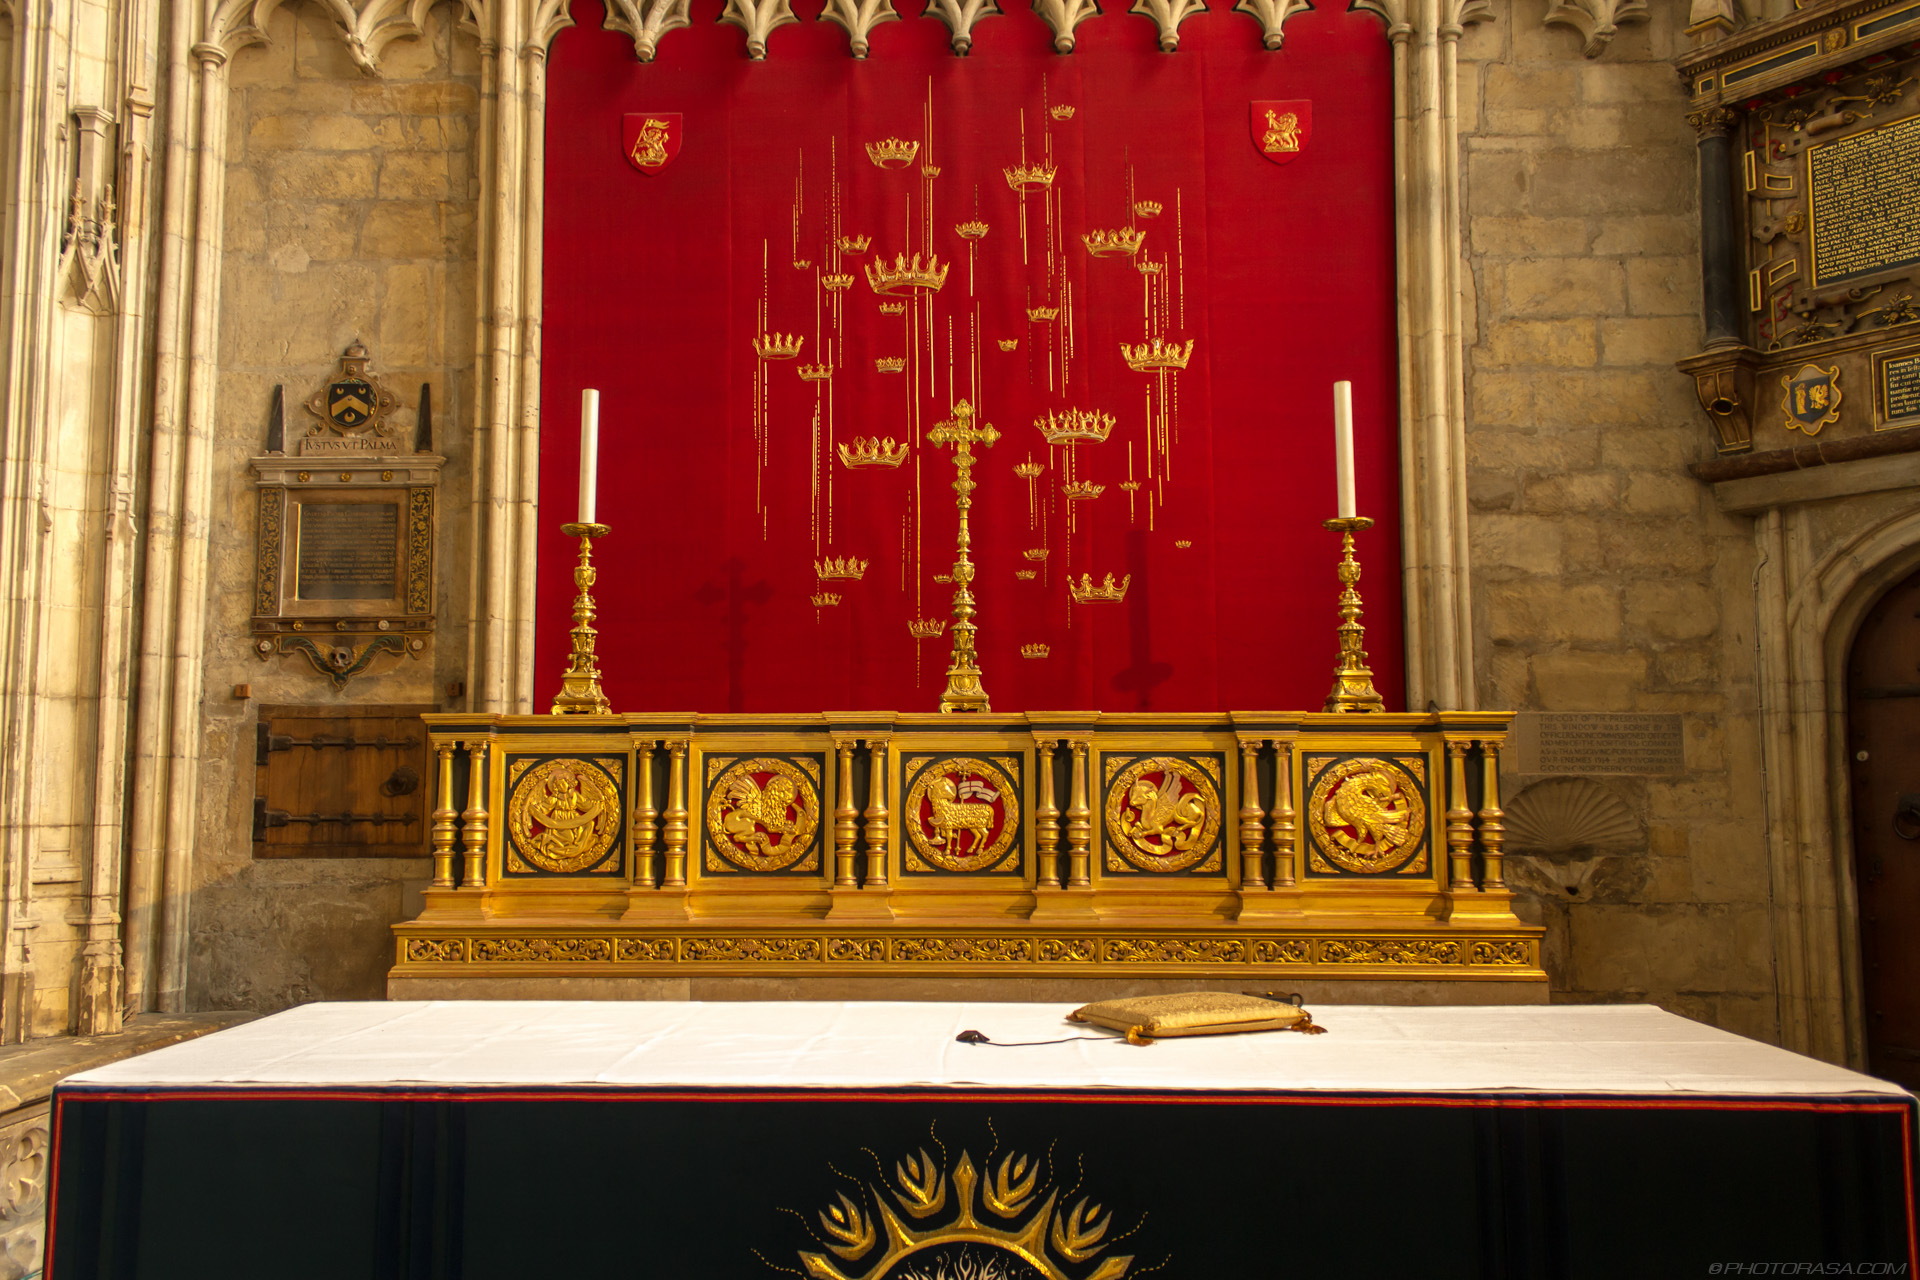 https://photorasa.com/yorkminster-cathedral/all-saints-chapel-altar/